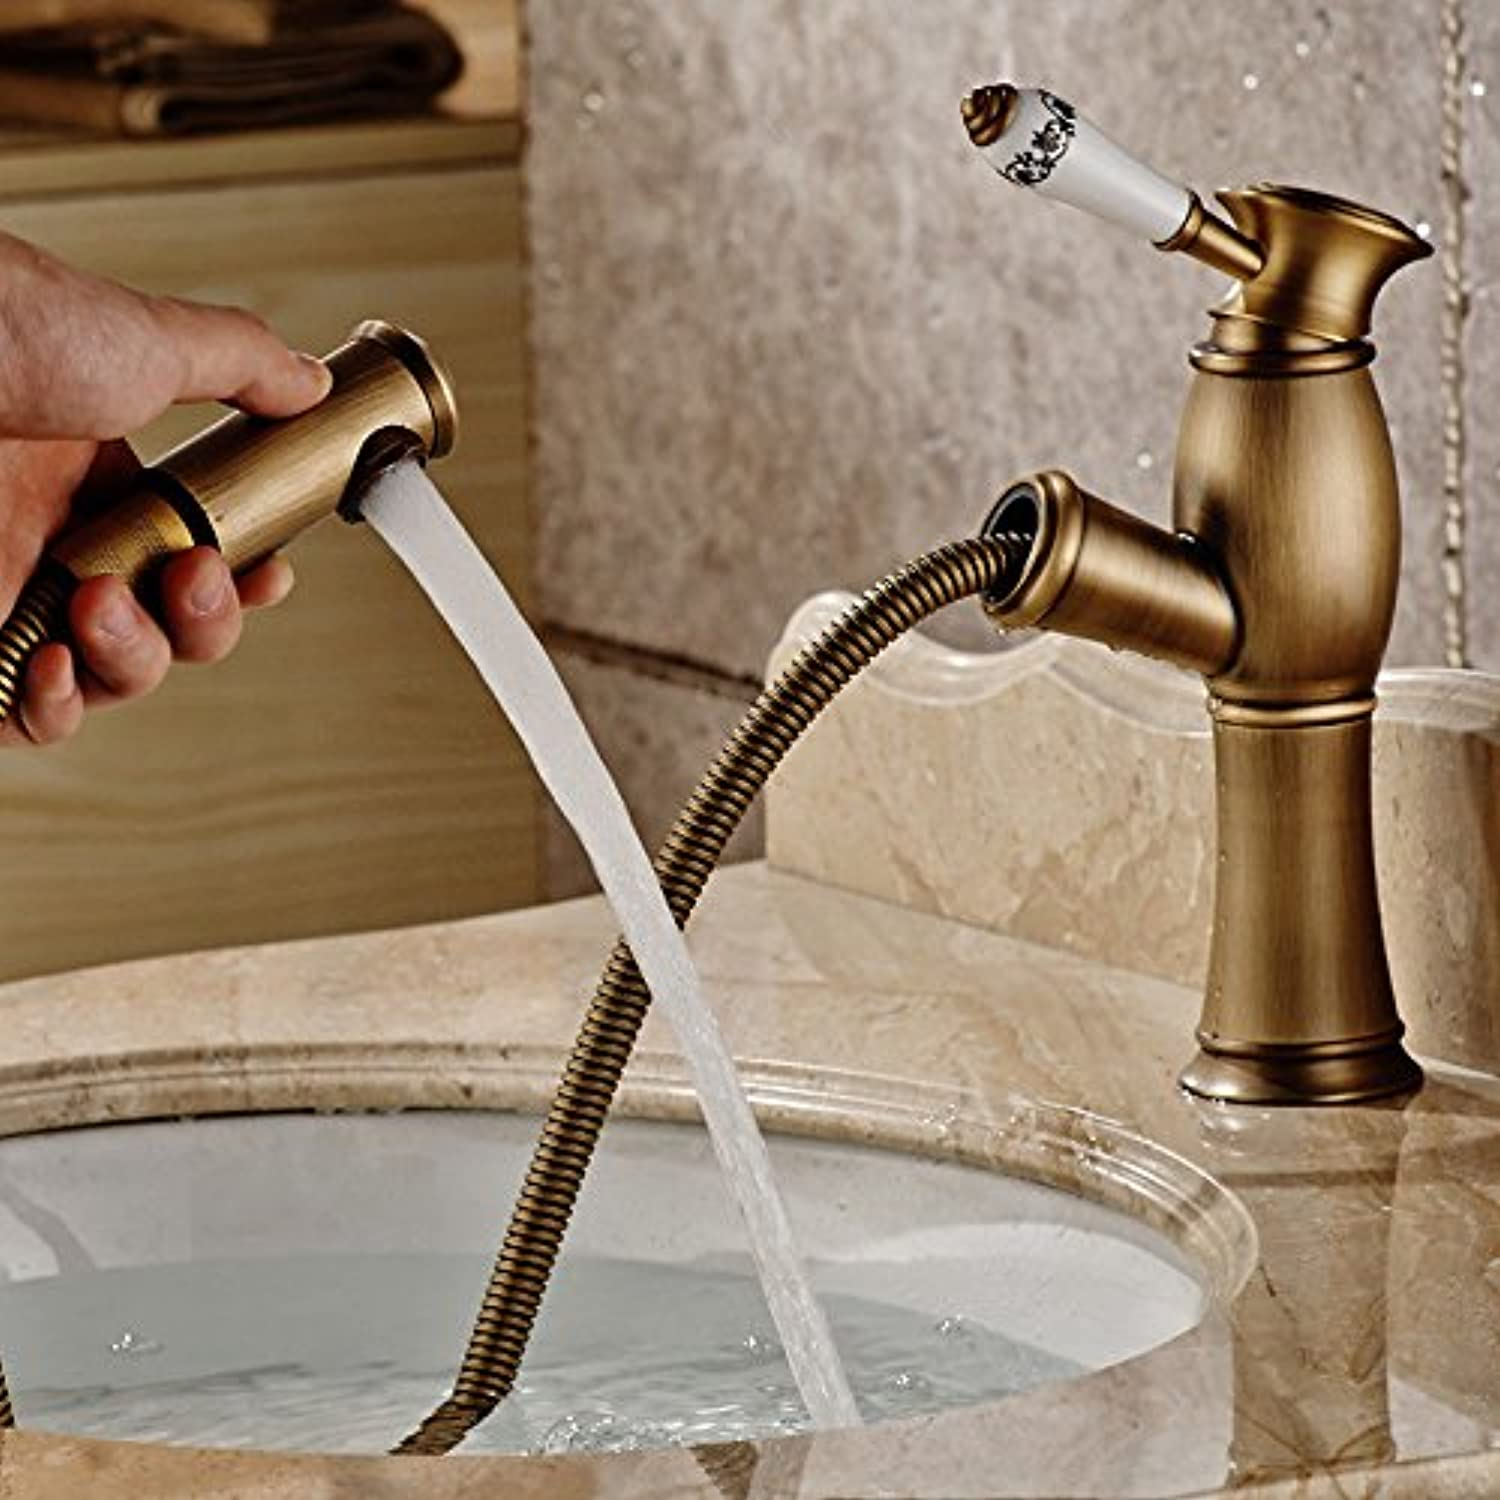 ETERNAL QUALITY Bathroom Sink Basin Tap Brass Mixer Tap Washroom Mixer Faucet All copper pull hot and cold golden basin faucet antique table basin table telescoping Faucet Kitchen Sink Taps